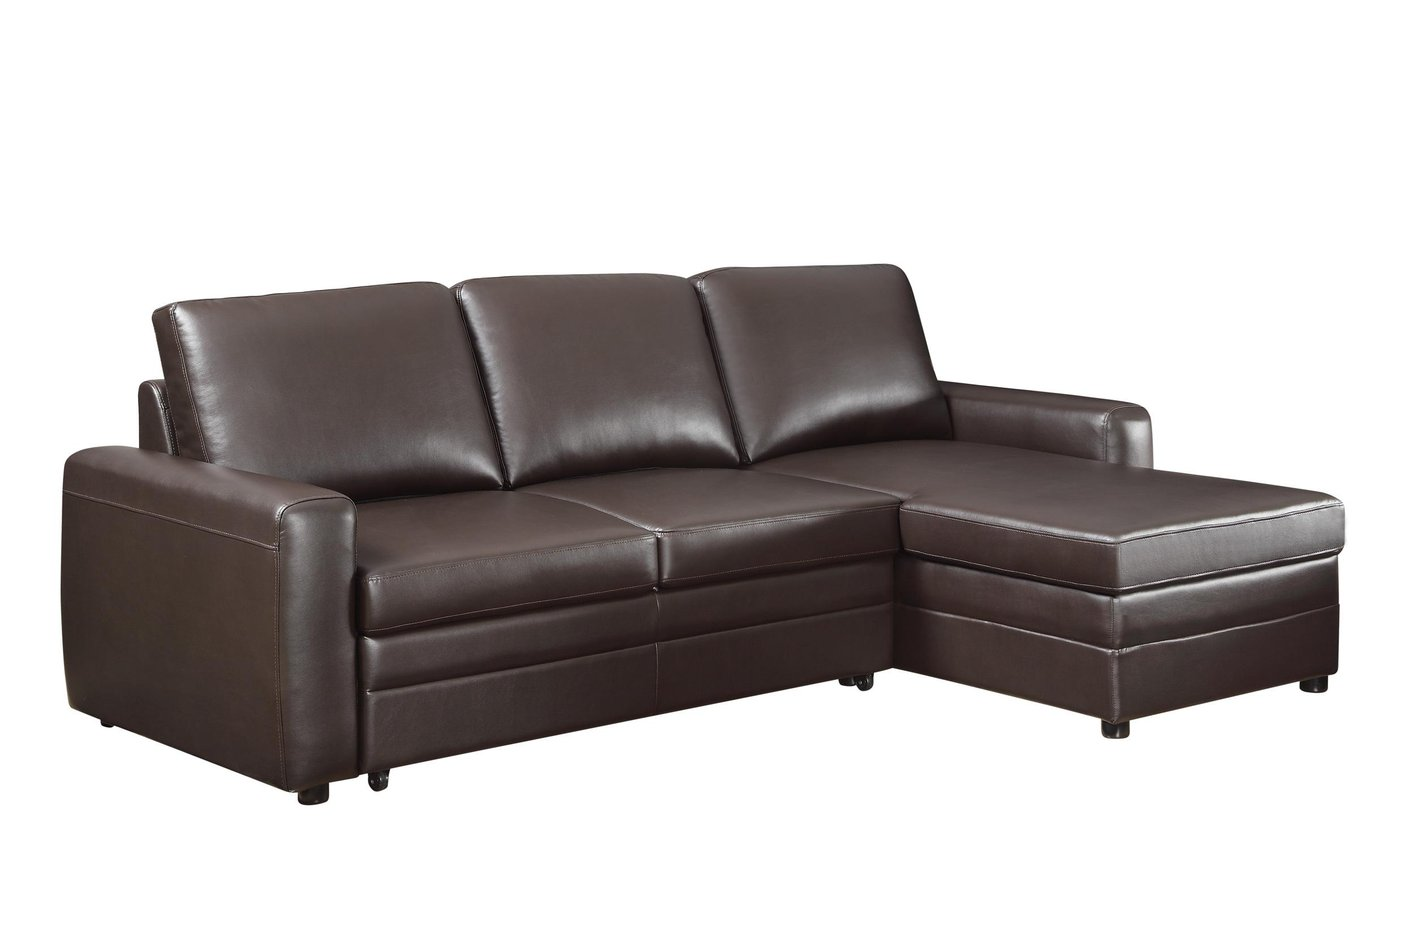 Coaster gus 503870 brown leather sectional sofa steal a for Leather furniture